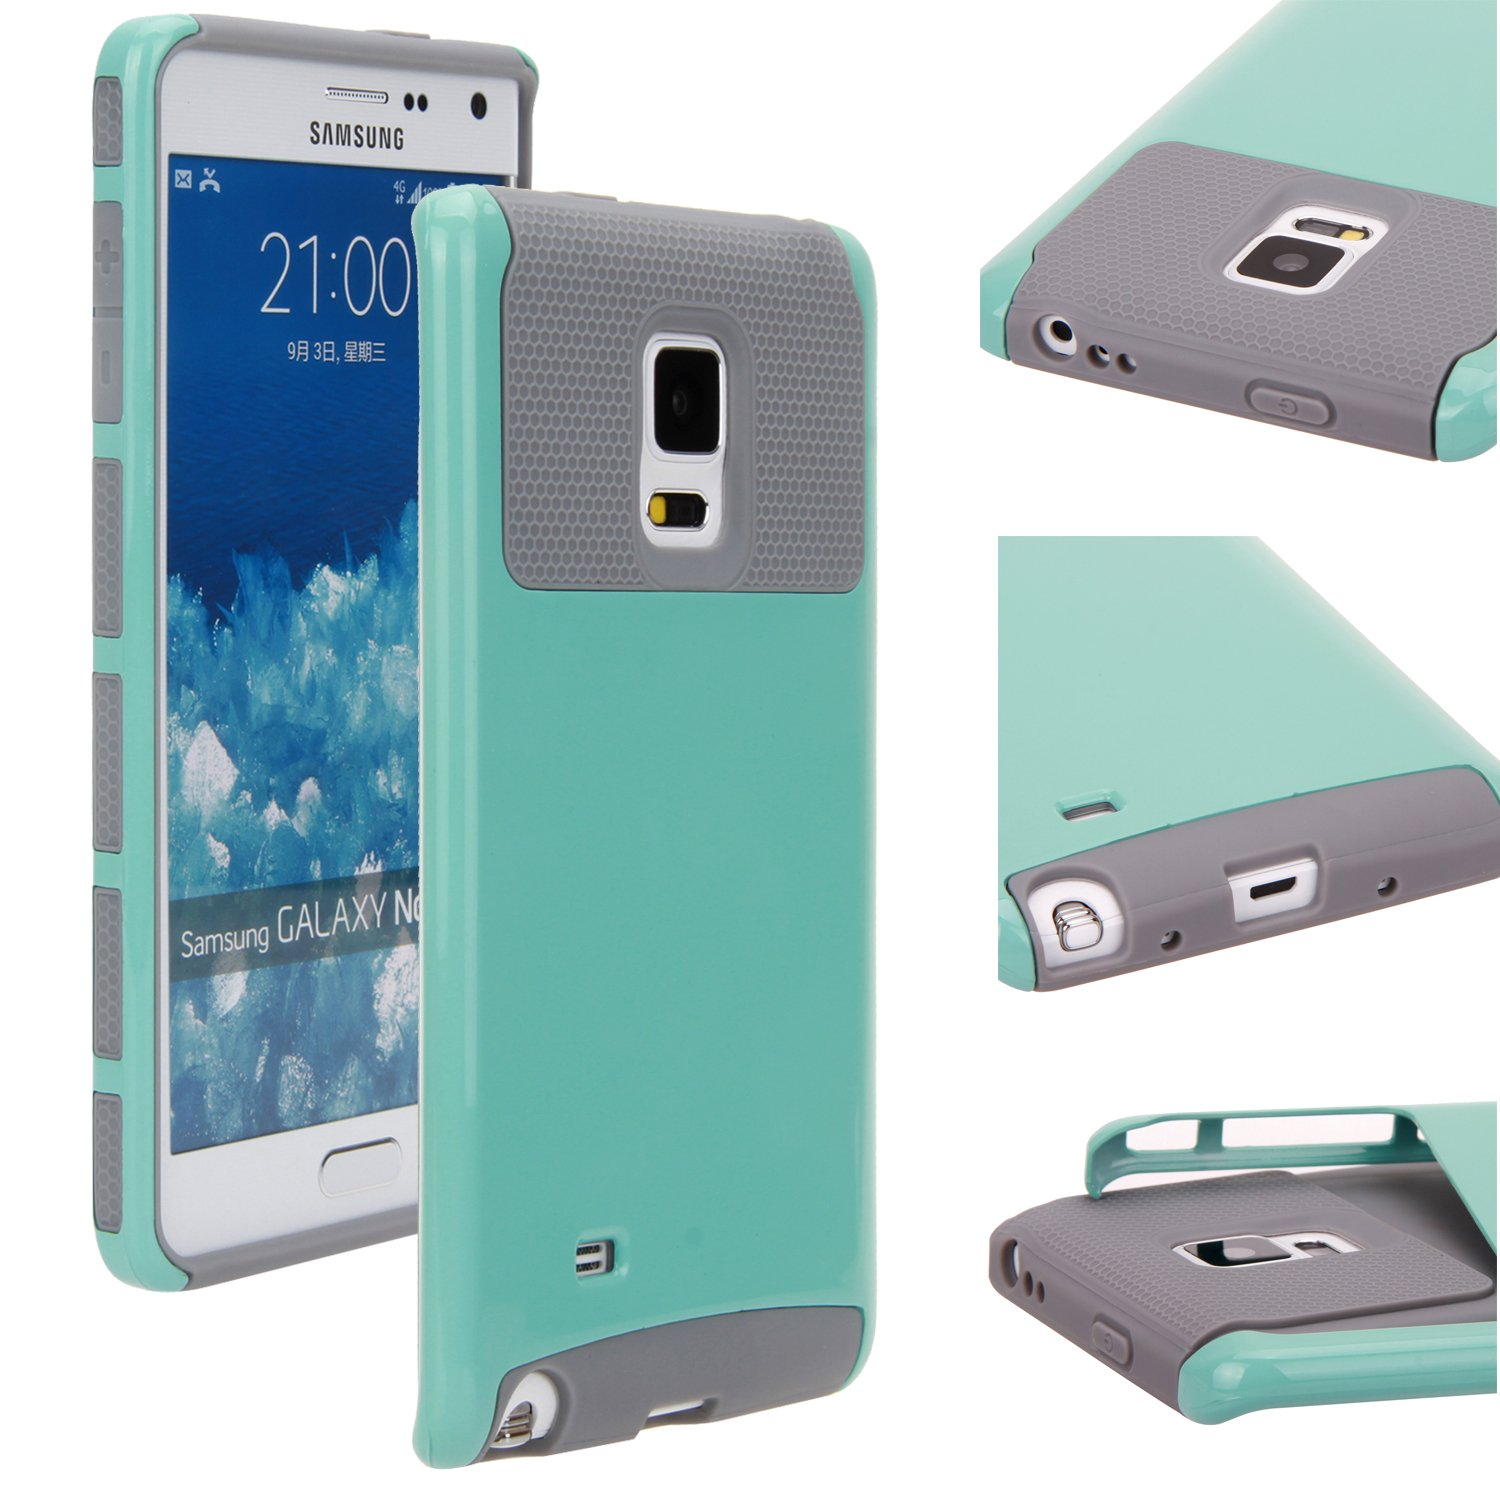 Amazon.com: GALAXY NOTE 4 edge case, E LV GALAXY NOTE 4 edge ...